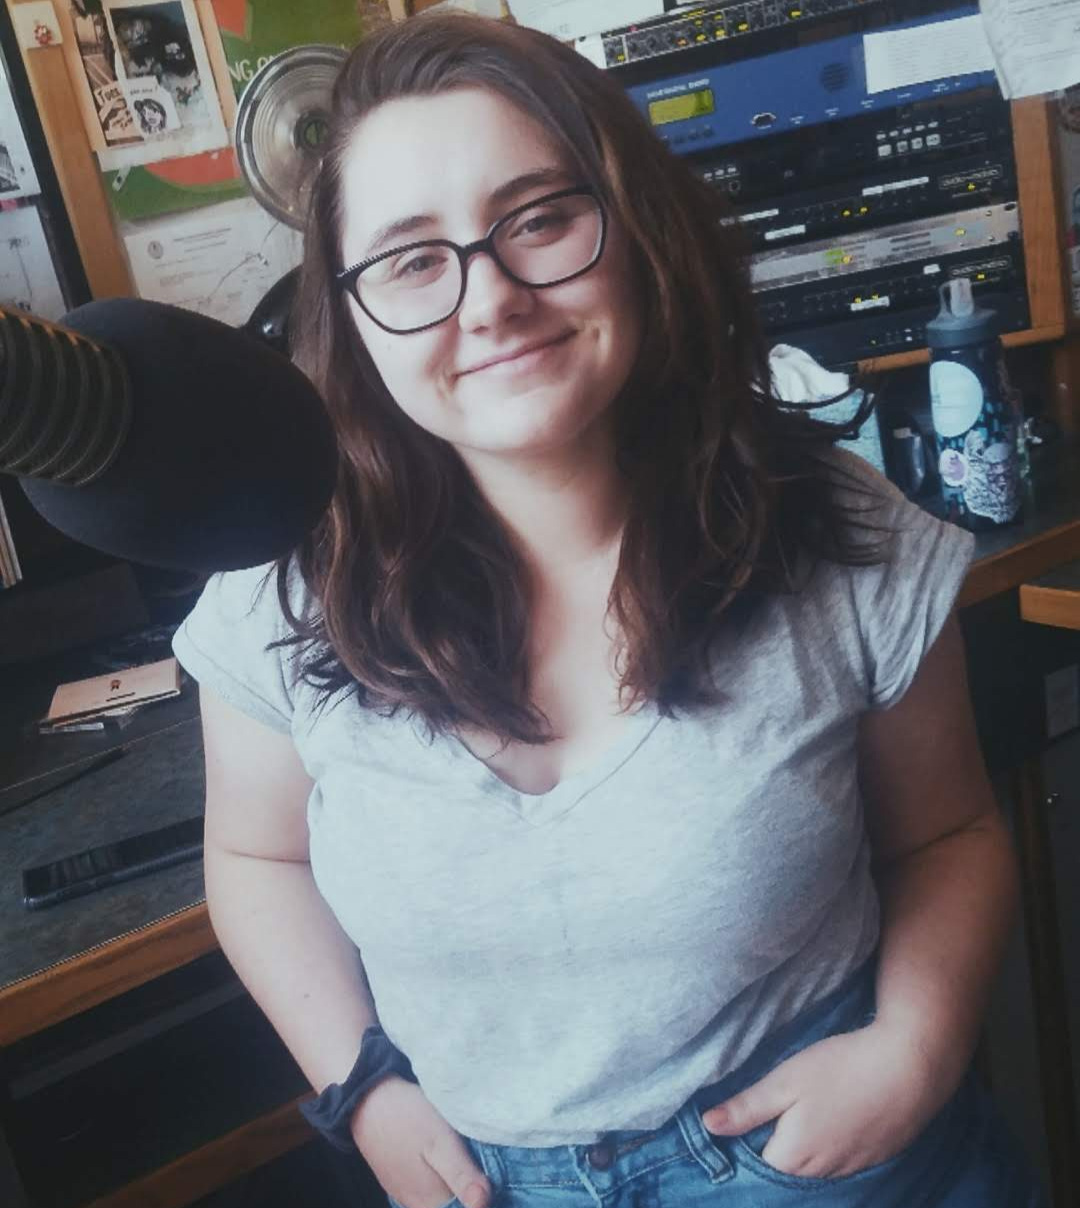 Natalie SchmidtProgram Director - pd@kbga.org | (406) 880-8990Coming in at 5ft tall, Natalie aka DJ Short, is ready spread the love of KBGA throughout Missoula one radio show at a time! If you wanna join her in the ring, feel free to reach out anytime as she has plenty of love to go around.